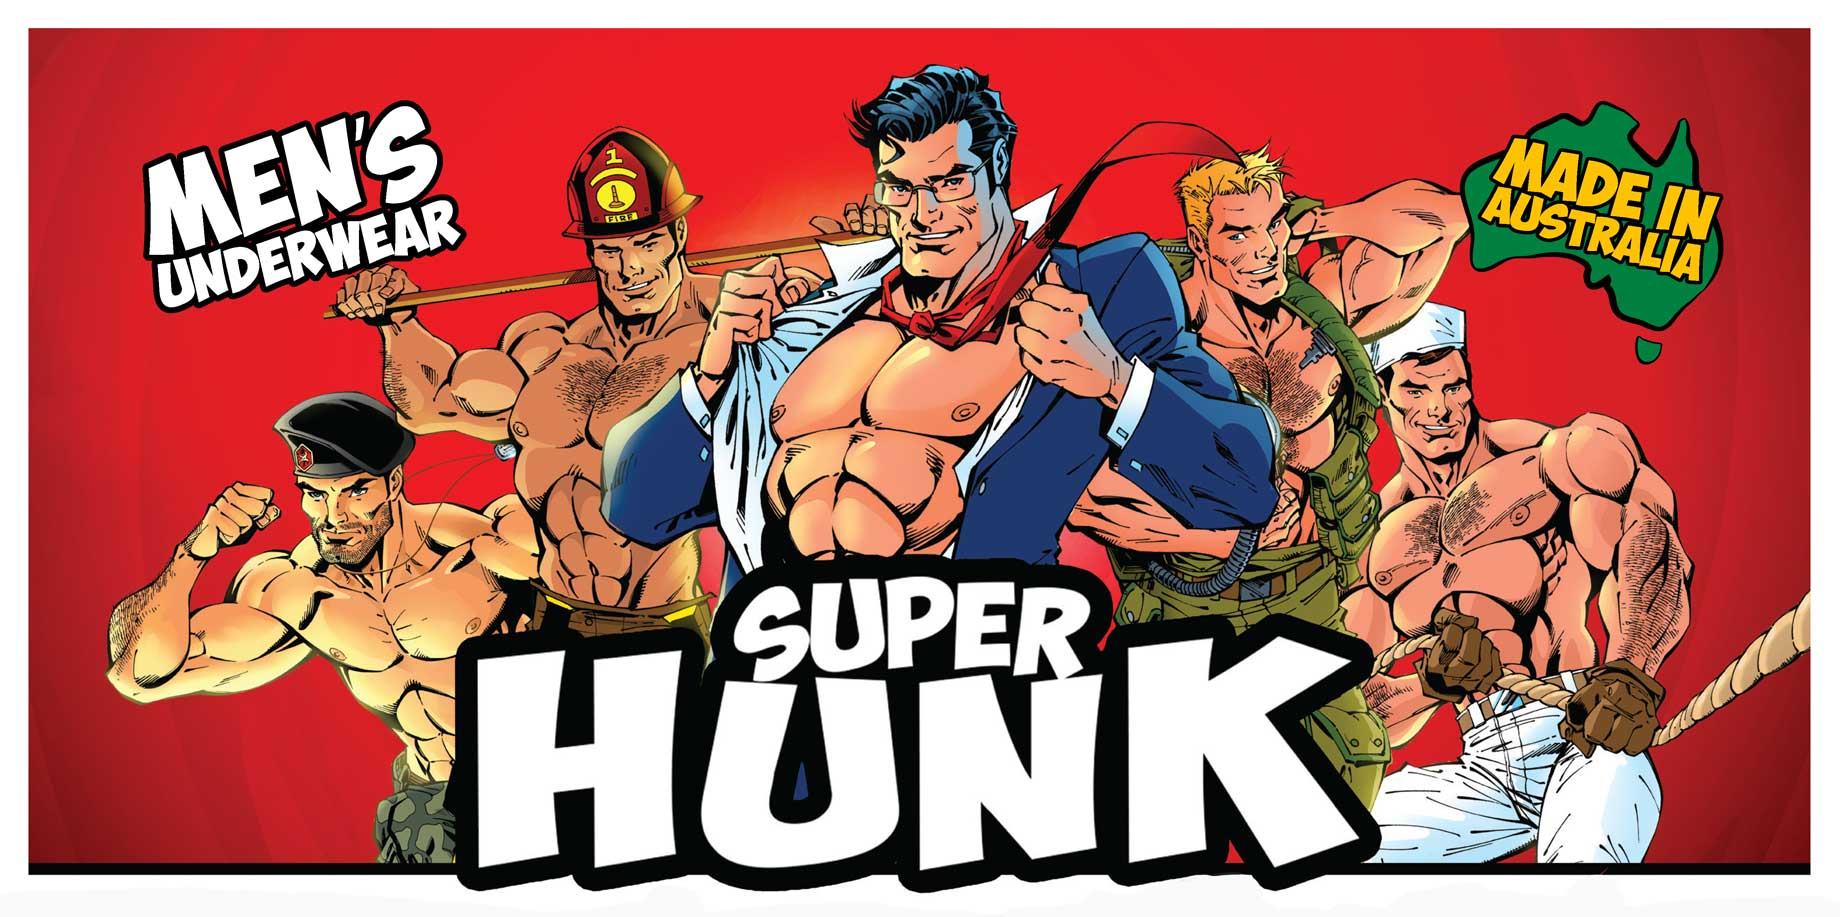 Aussiebum-Comic-book-Superhunk-banner-artwork